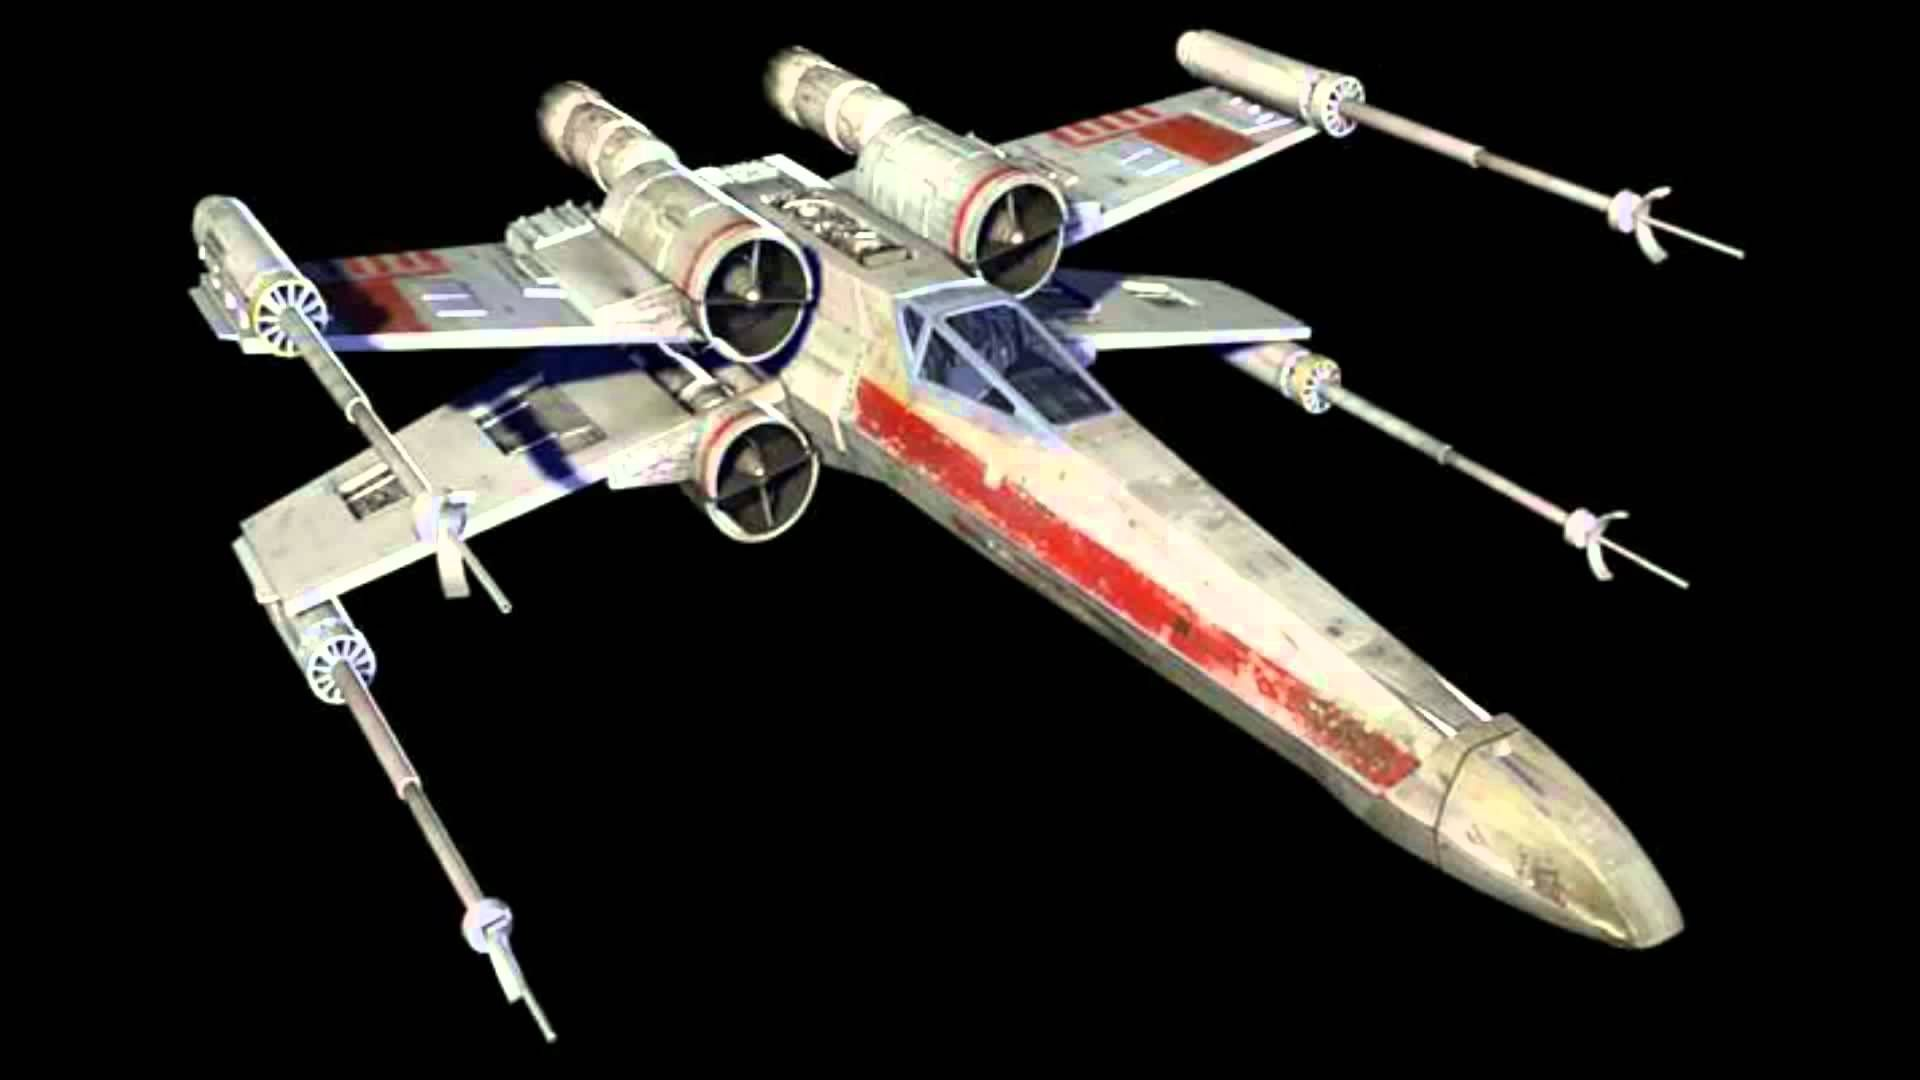 Star Wars X Wing Ambient Engine Sound For 12 Hours Star Wars Ships Star Wars Pictures Star Wars Spaceships